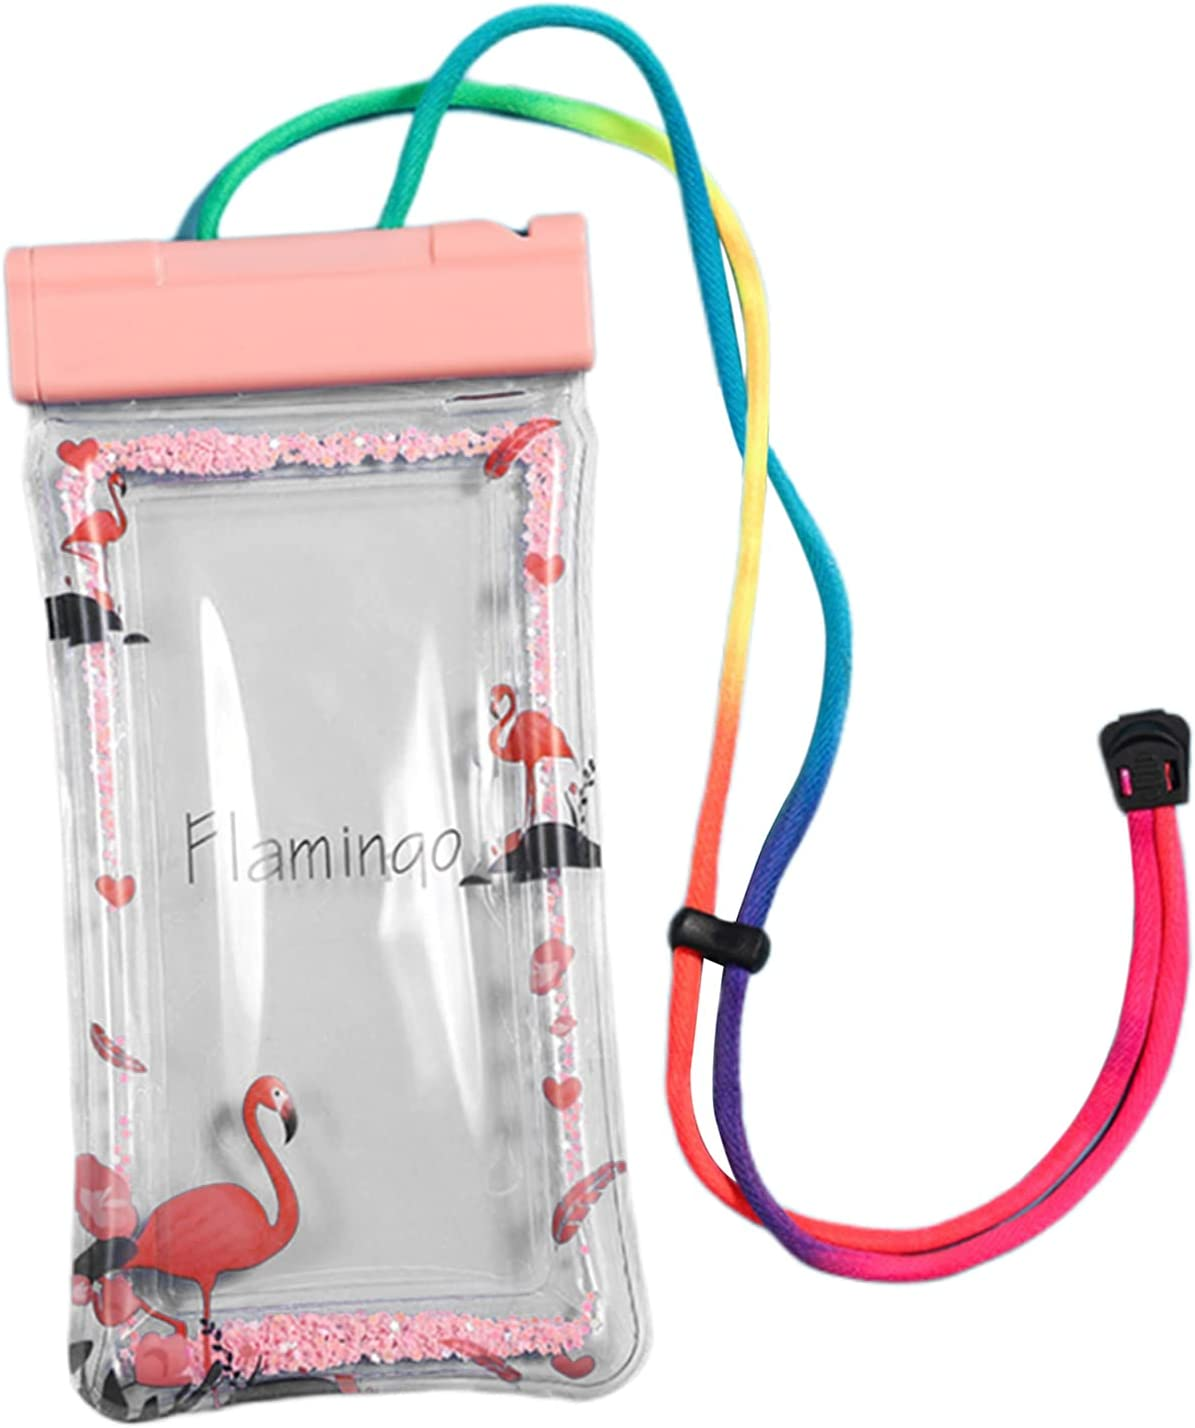 Homyl Waterproof Phone Case,Universal Large Water Resistant Underwater Cell Phone Holder Pouch Dry Bag with Emergency Whistle for Swimming Beach Surfing - Flamingo Whistle